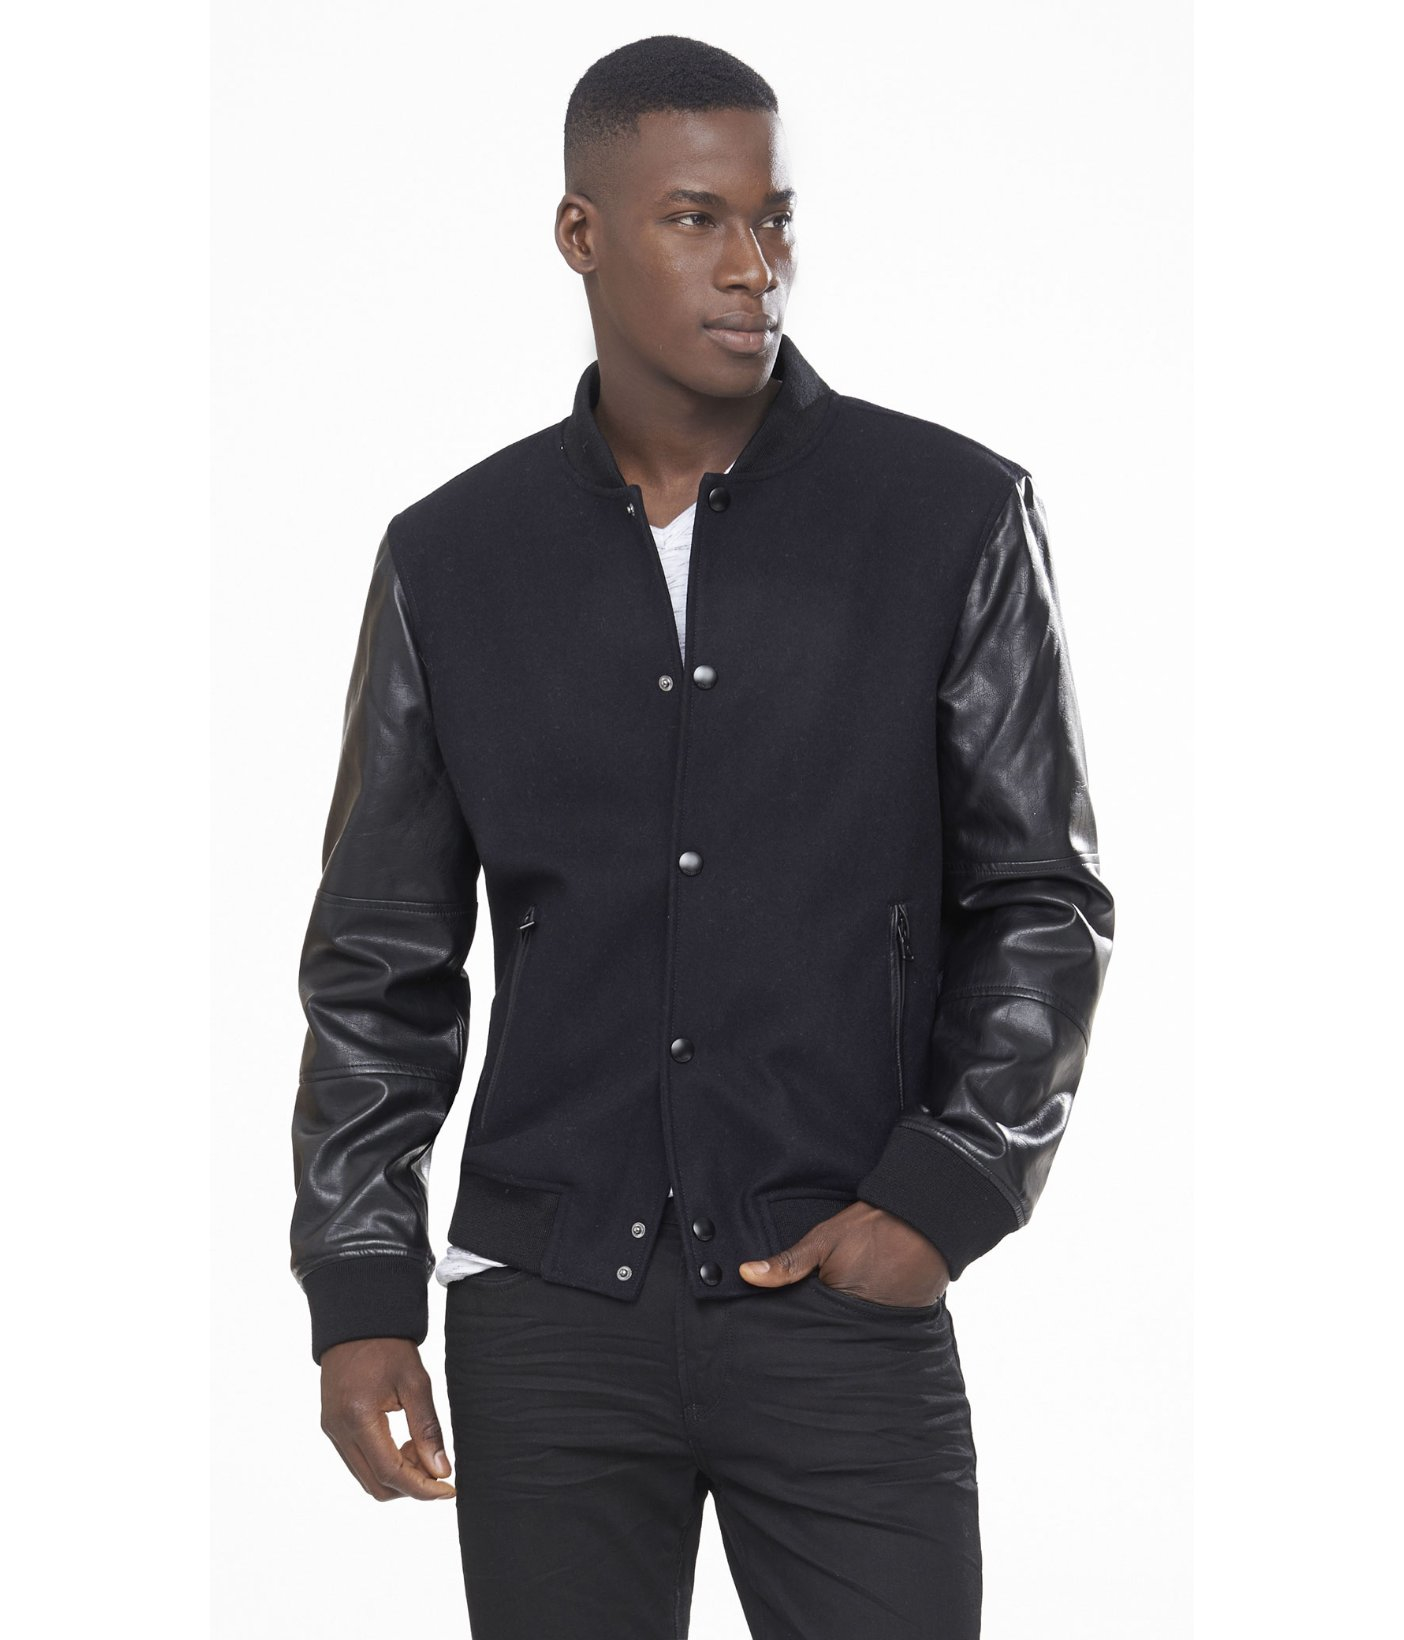 Baseball jacket leather sleeves